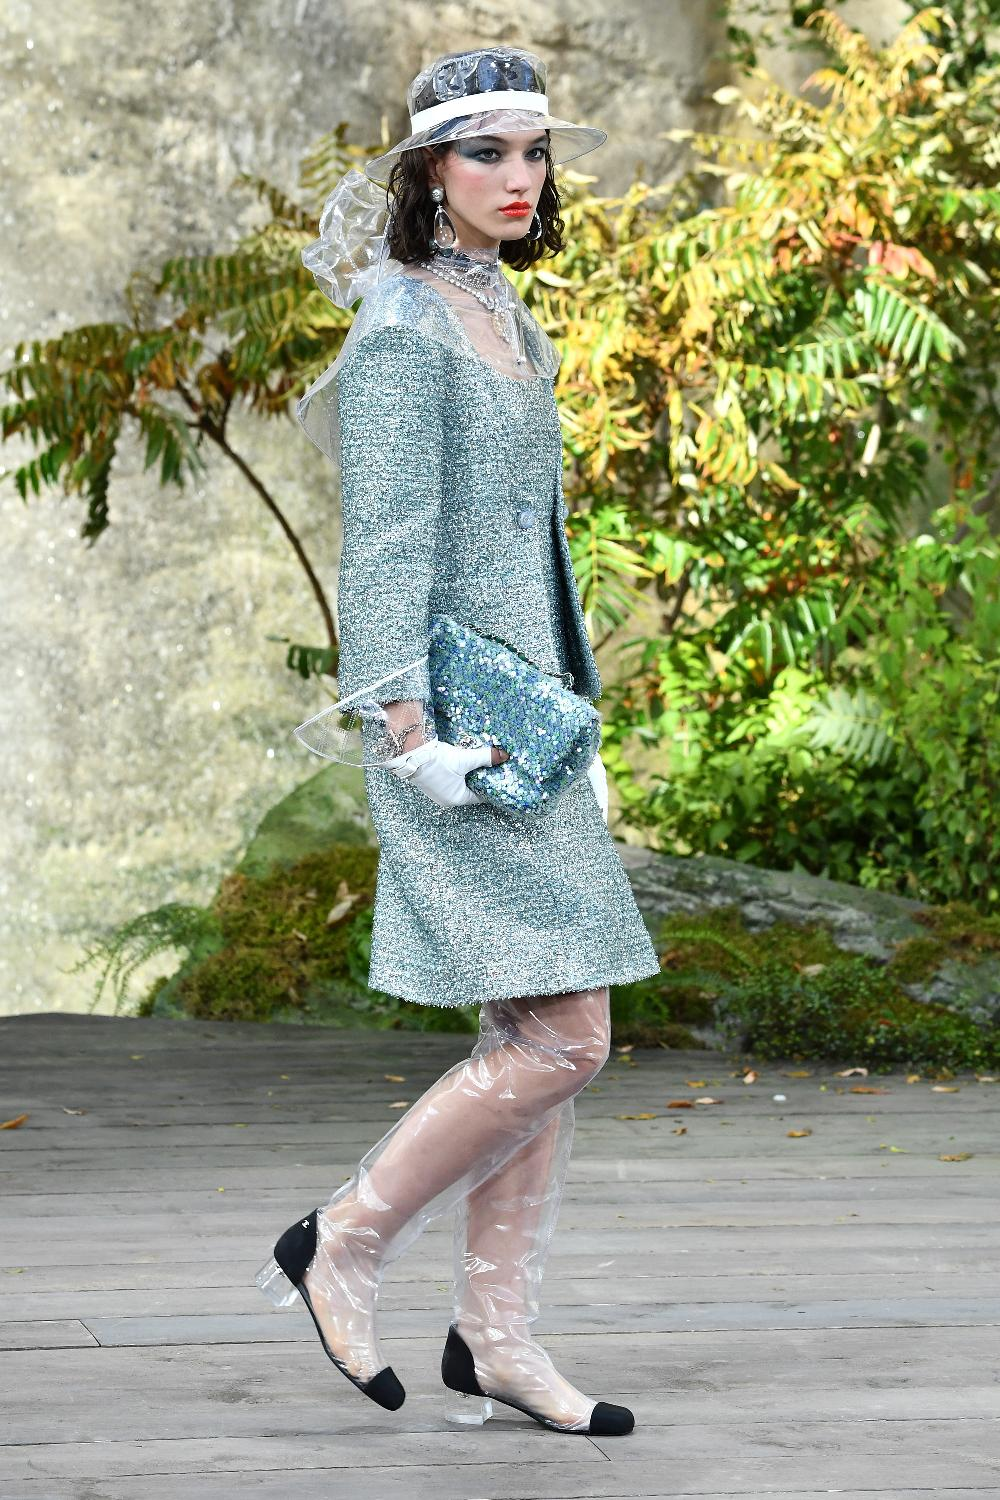 Chanel is making bizarre clear plastic boots and hats twitter has a lot of  feelings jpg 44e1addbf5a9